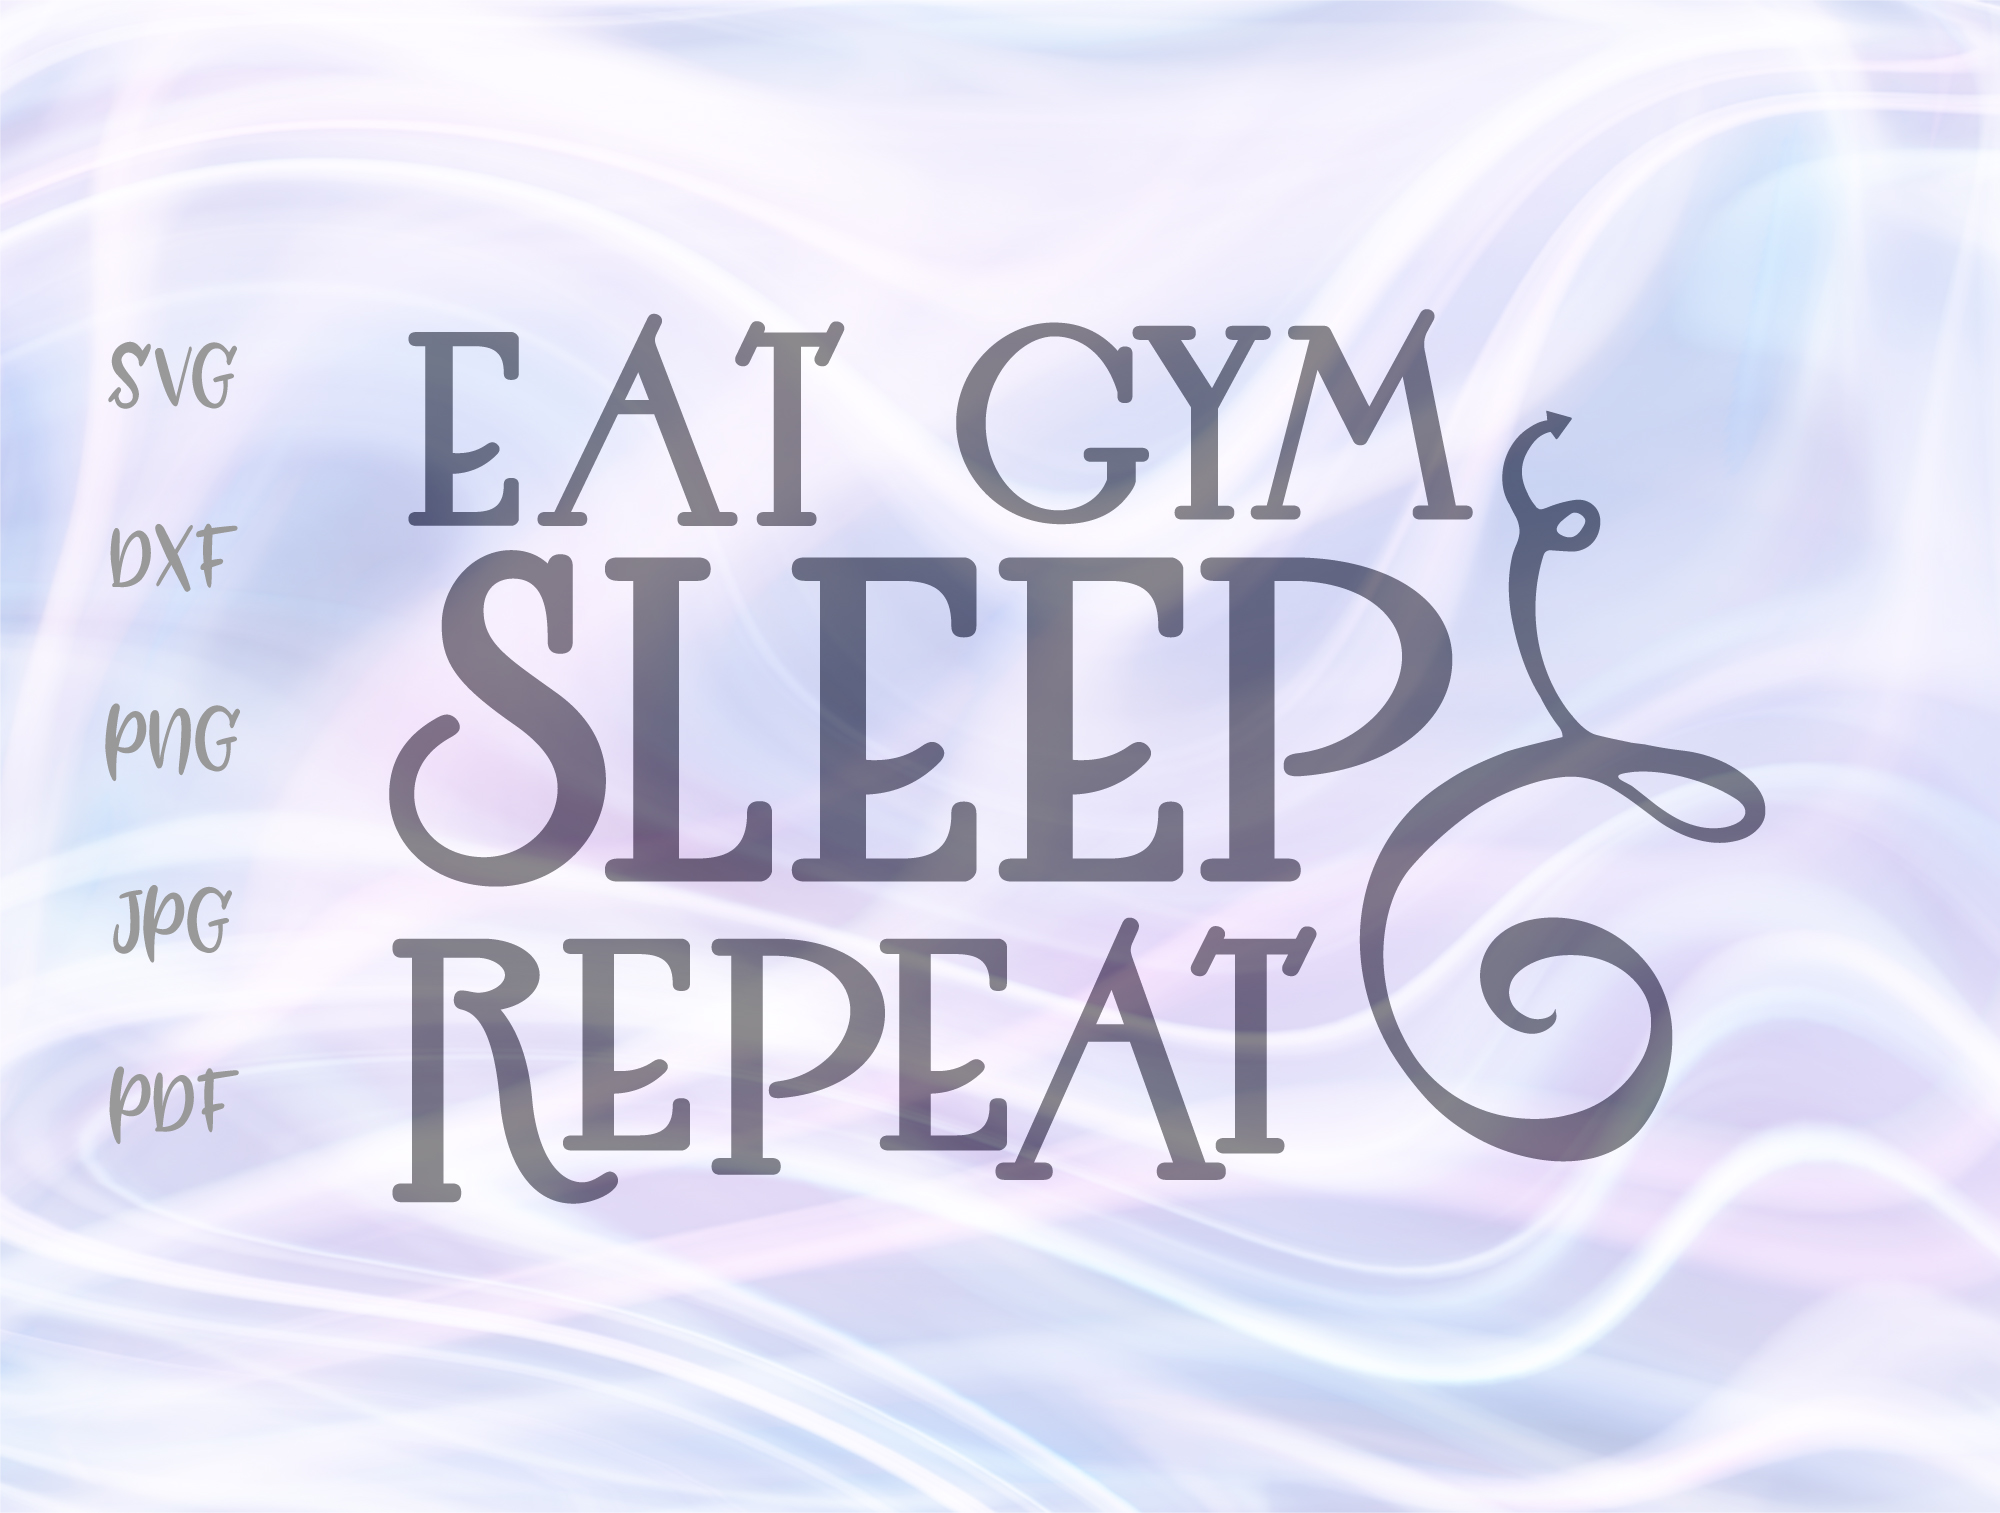 Download Free Eat Gym Sleep Repeat Funny Fitness Sign Graphic By Digitals By for Cricut Explore, Silhouette and other cutting machines.